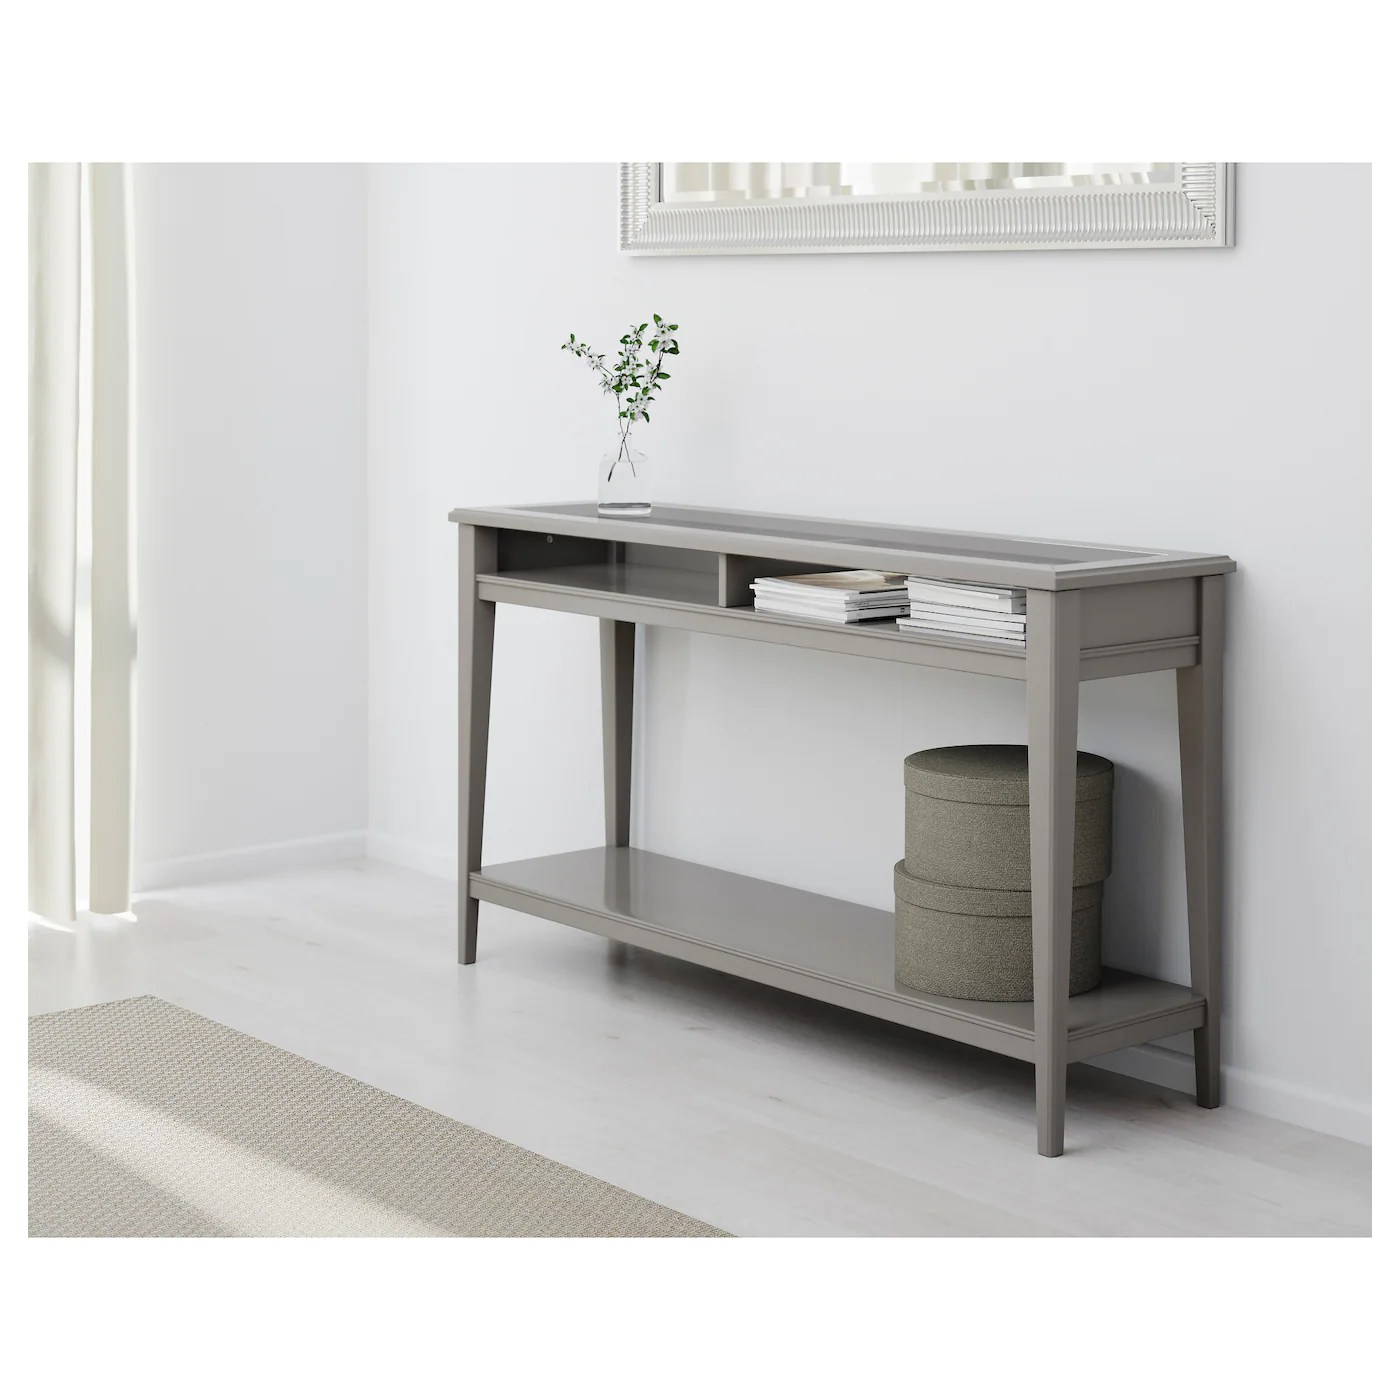 liatorp sofa table instructions bed at rooms to go console grey glass 133 x 37 cm ikea